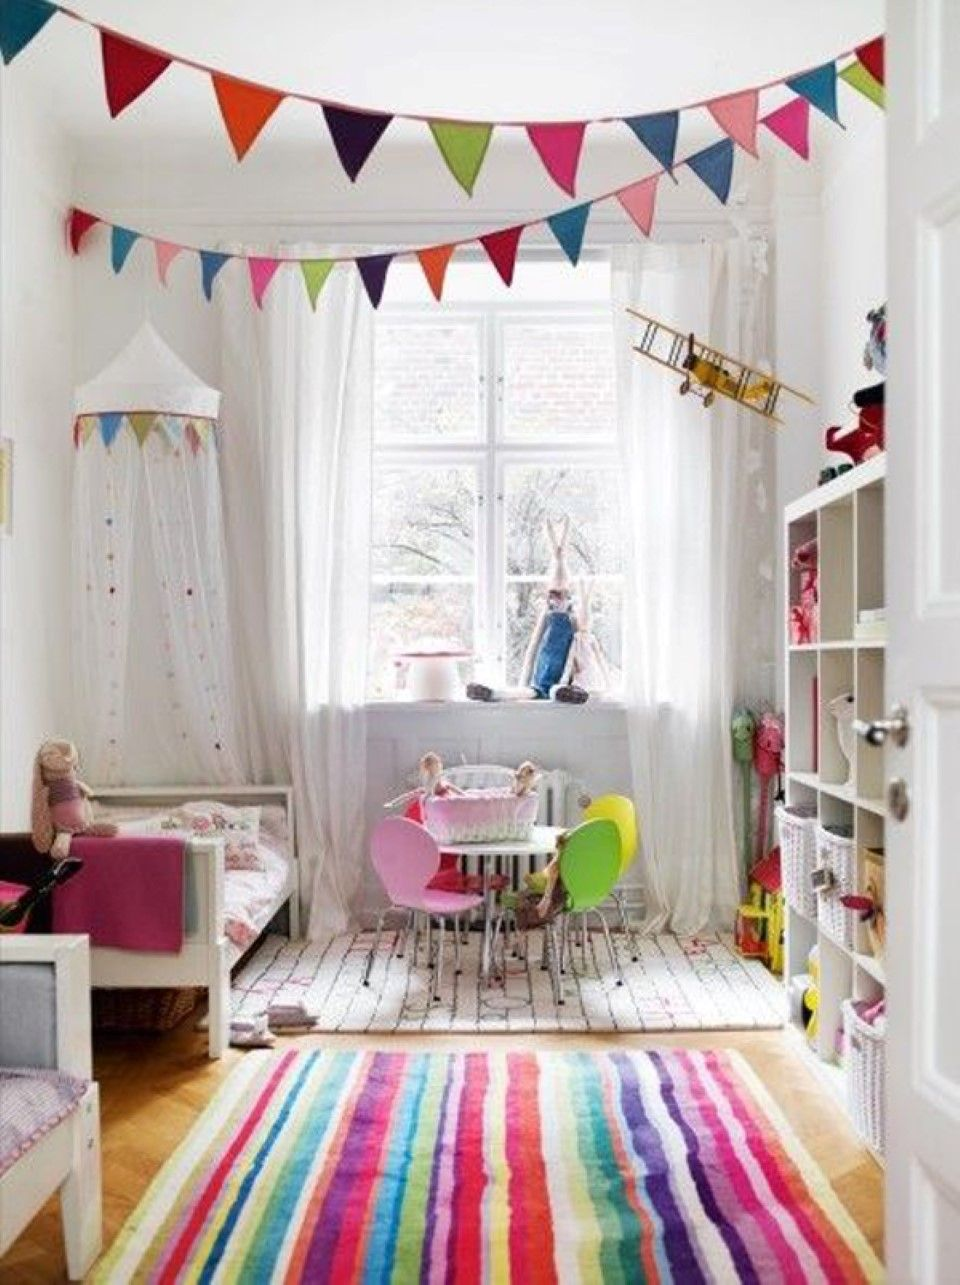 Amelia S Room Toddler Bedroom: Colourful Rainbow Rug With White Kids Playroom Set Plus